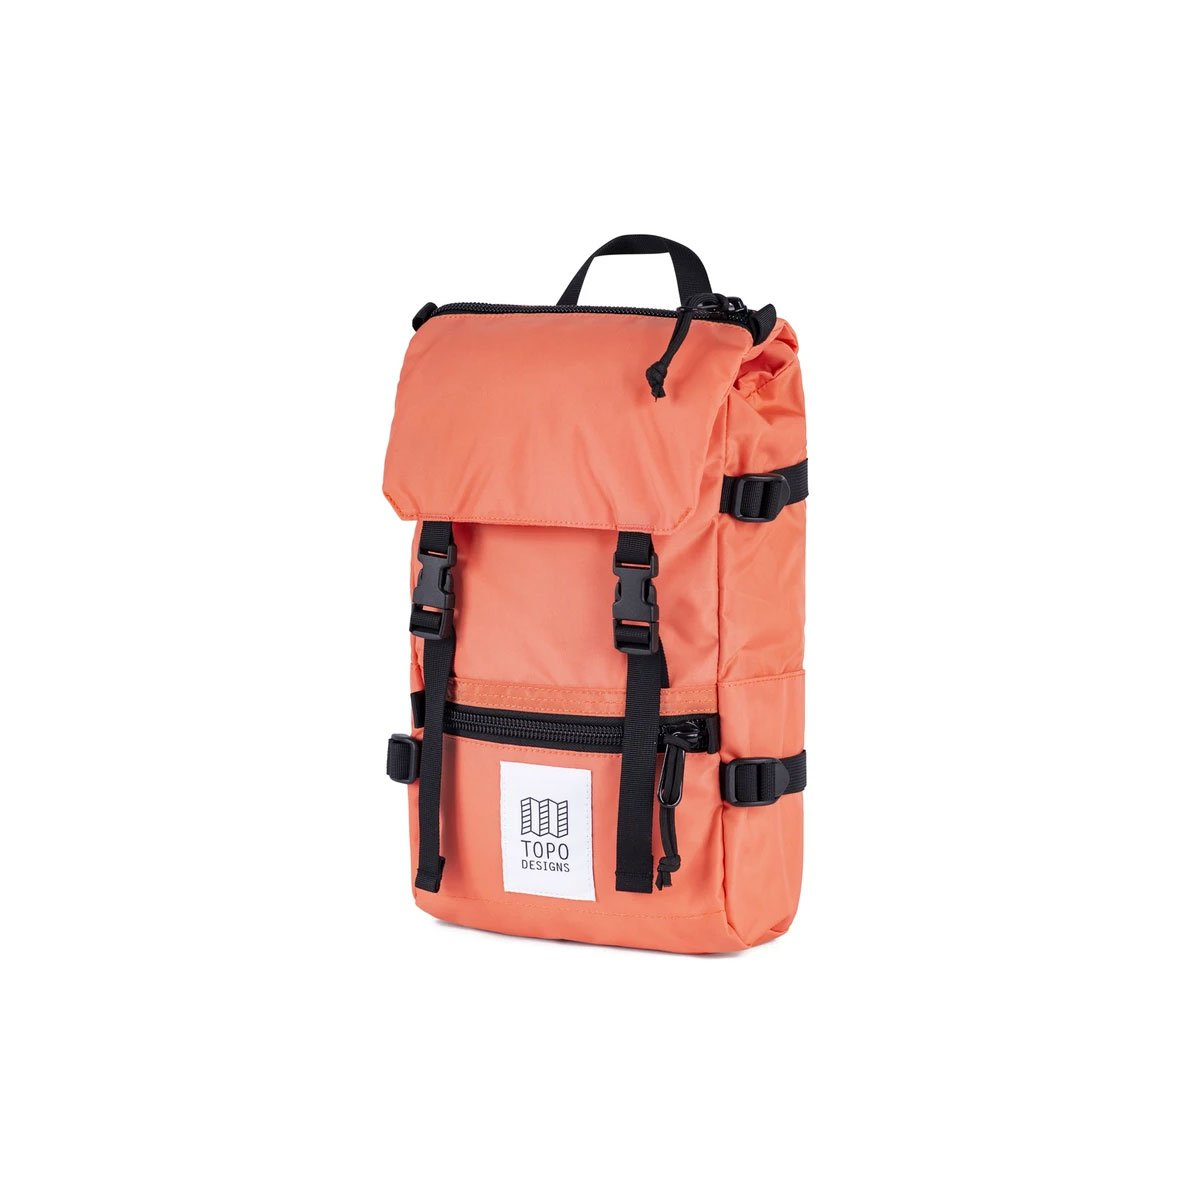 Topo Designs : Rover Pack Mini : Coral